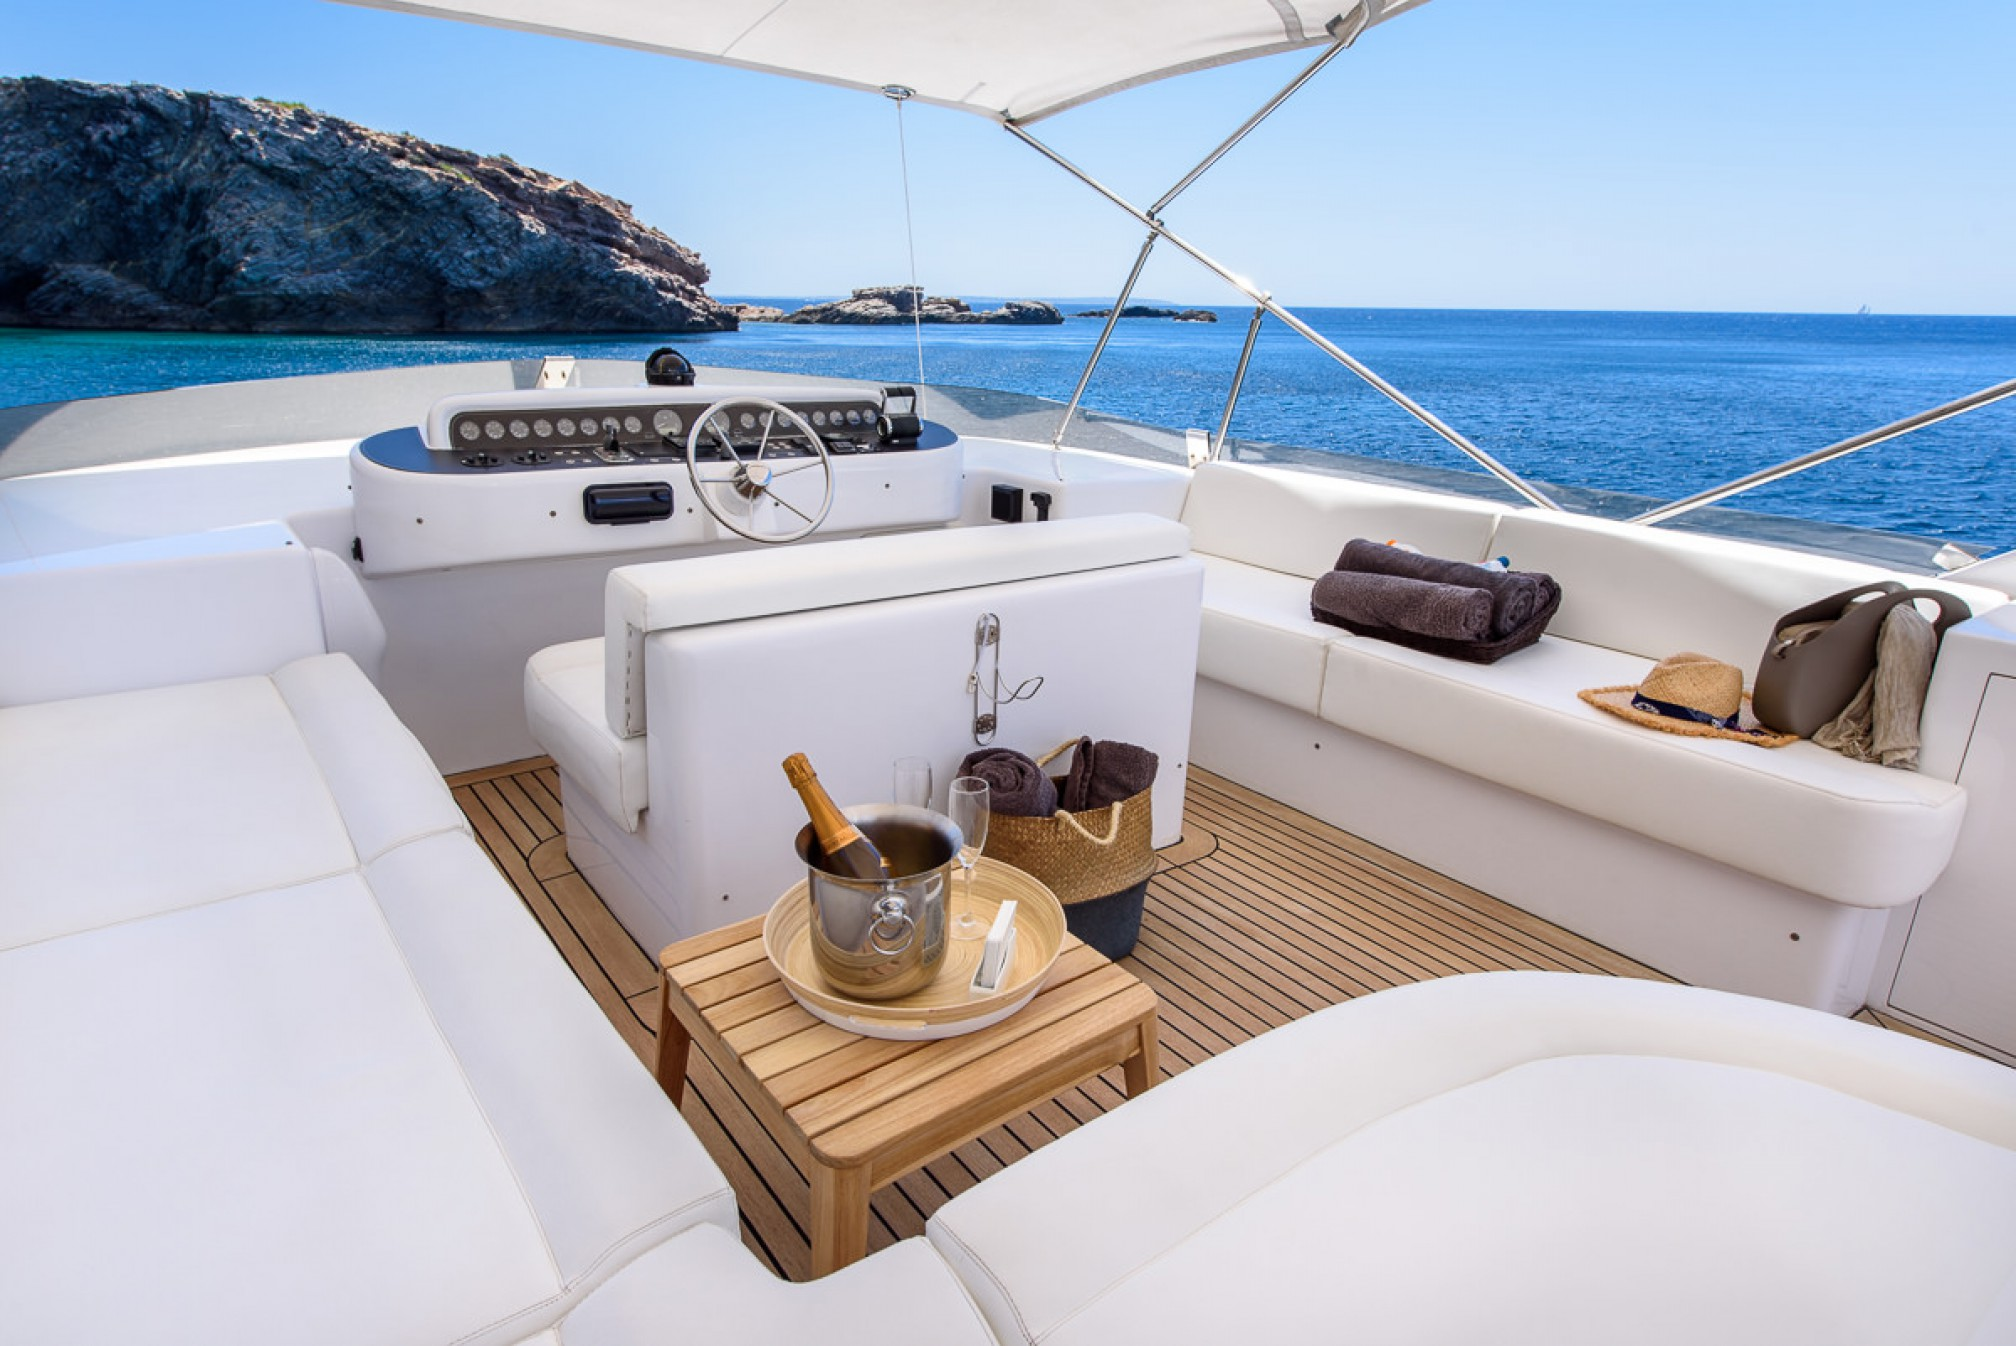 Rental yacht SEAWIDE outdoors